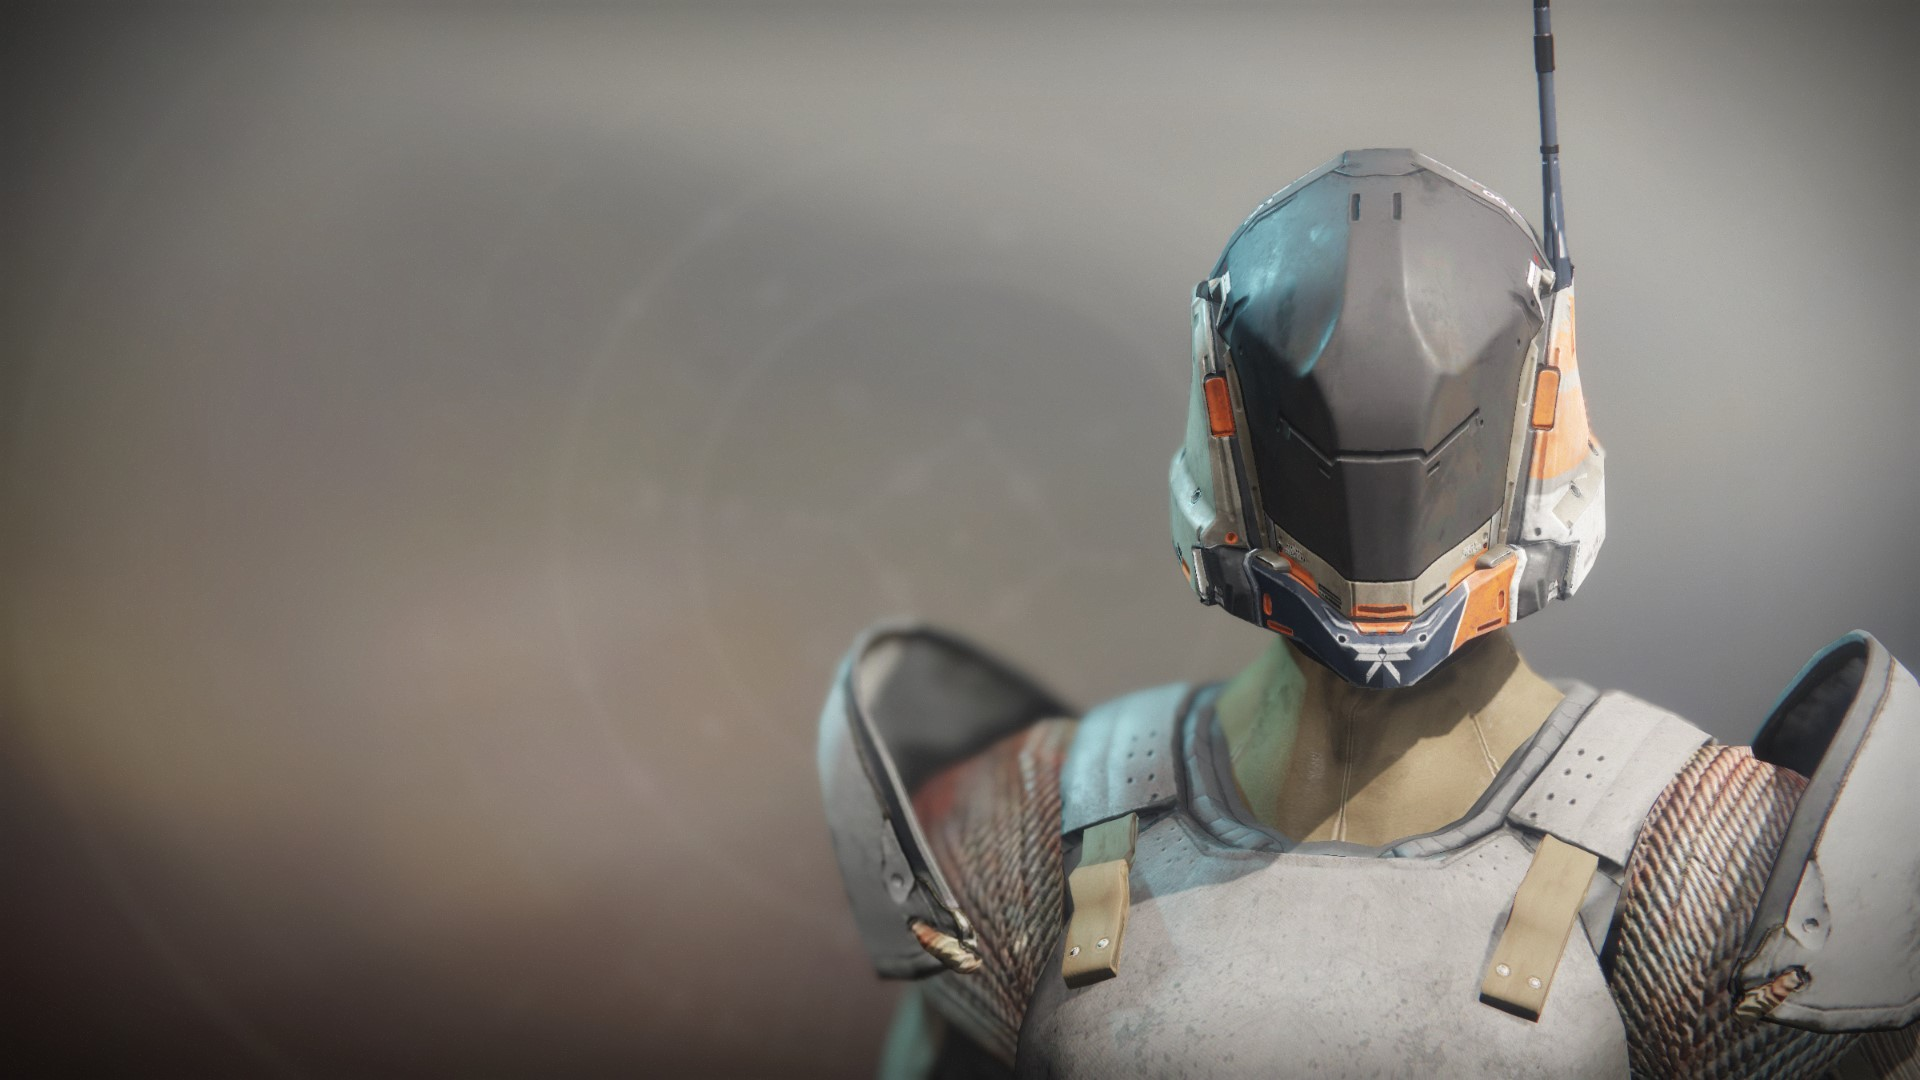 An in-game render of the Take Shelter Ornament.